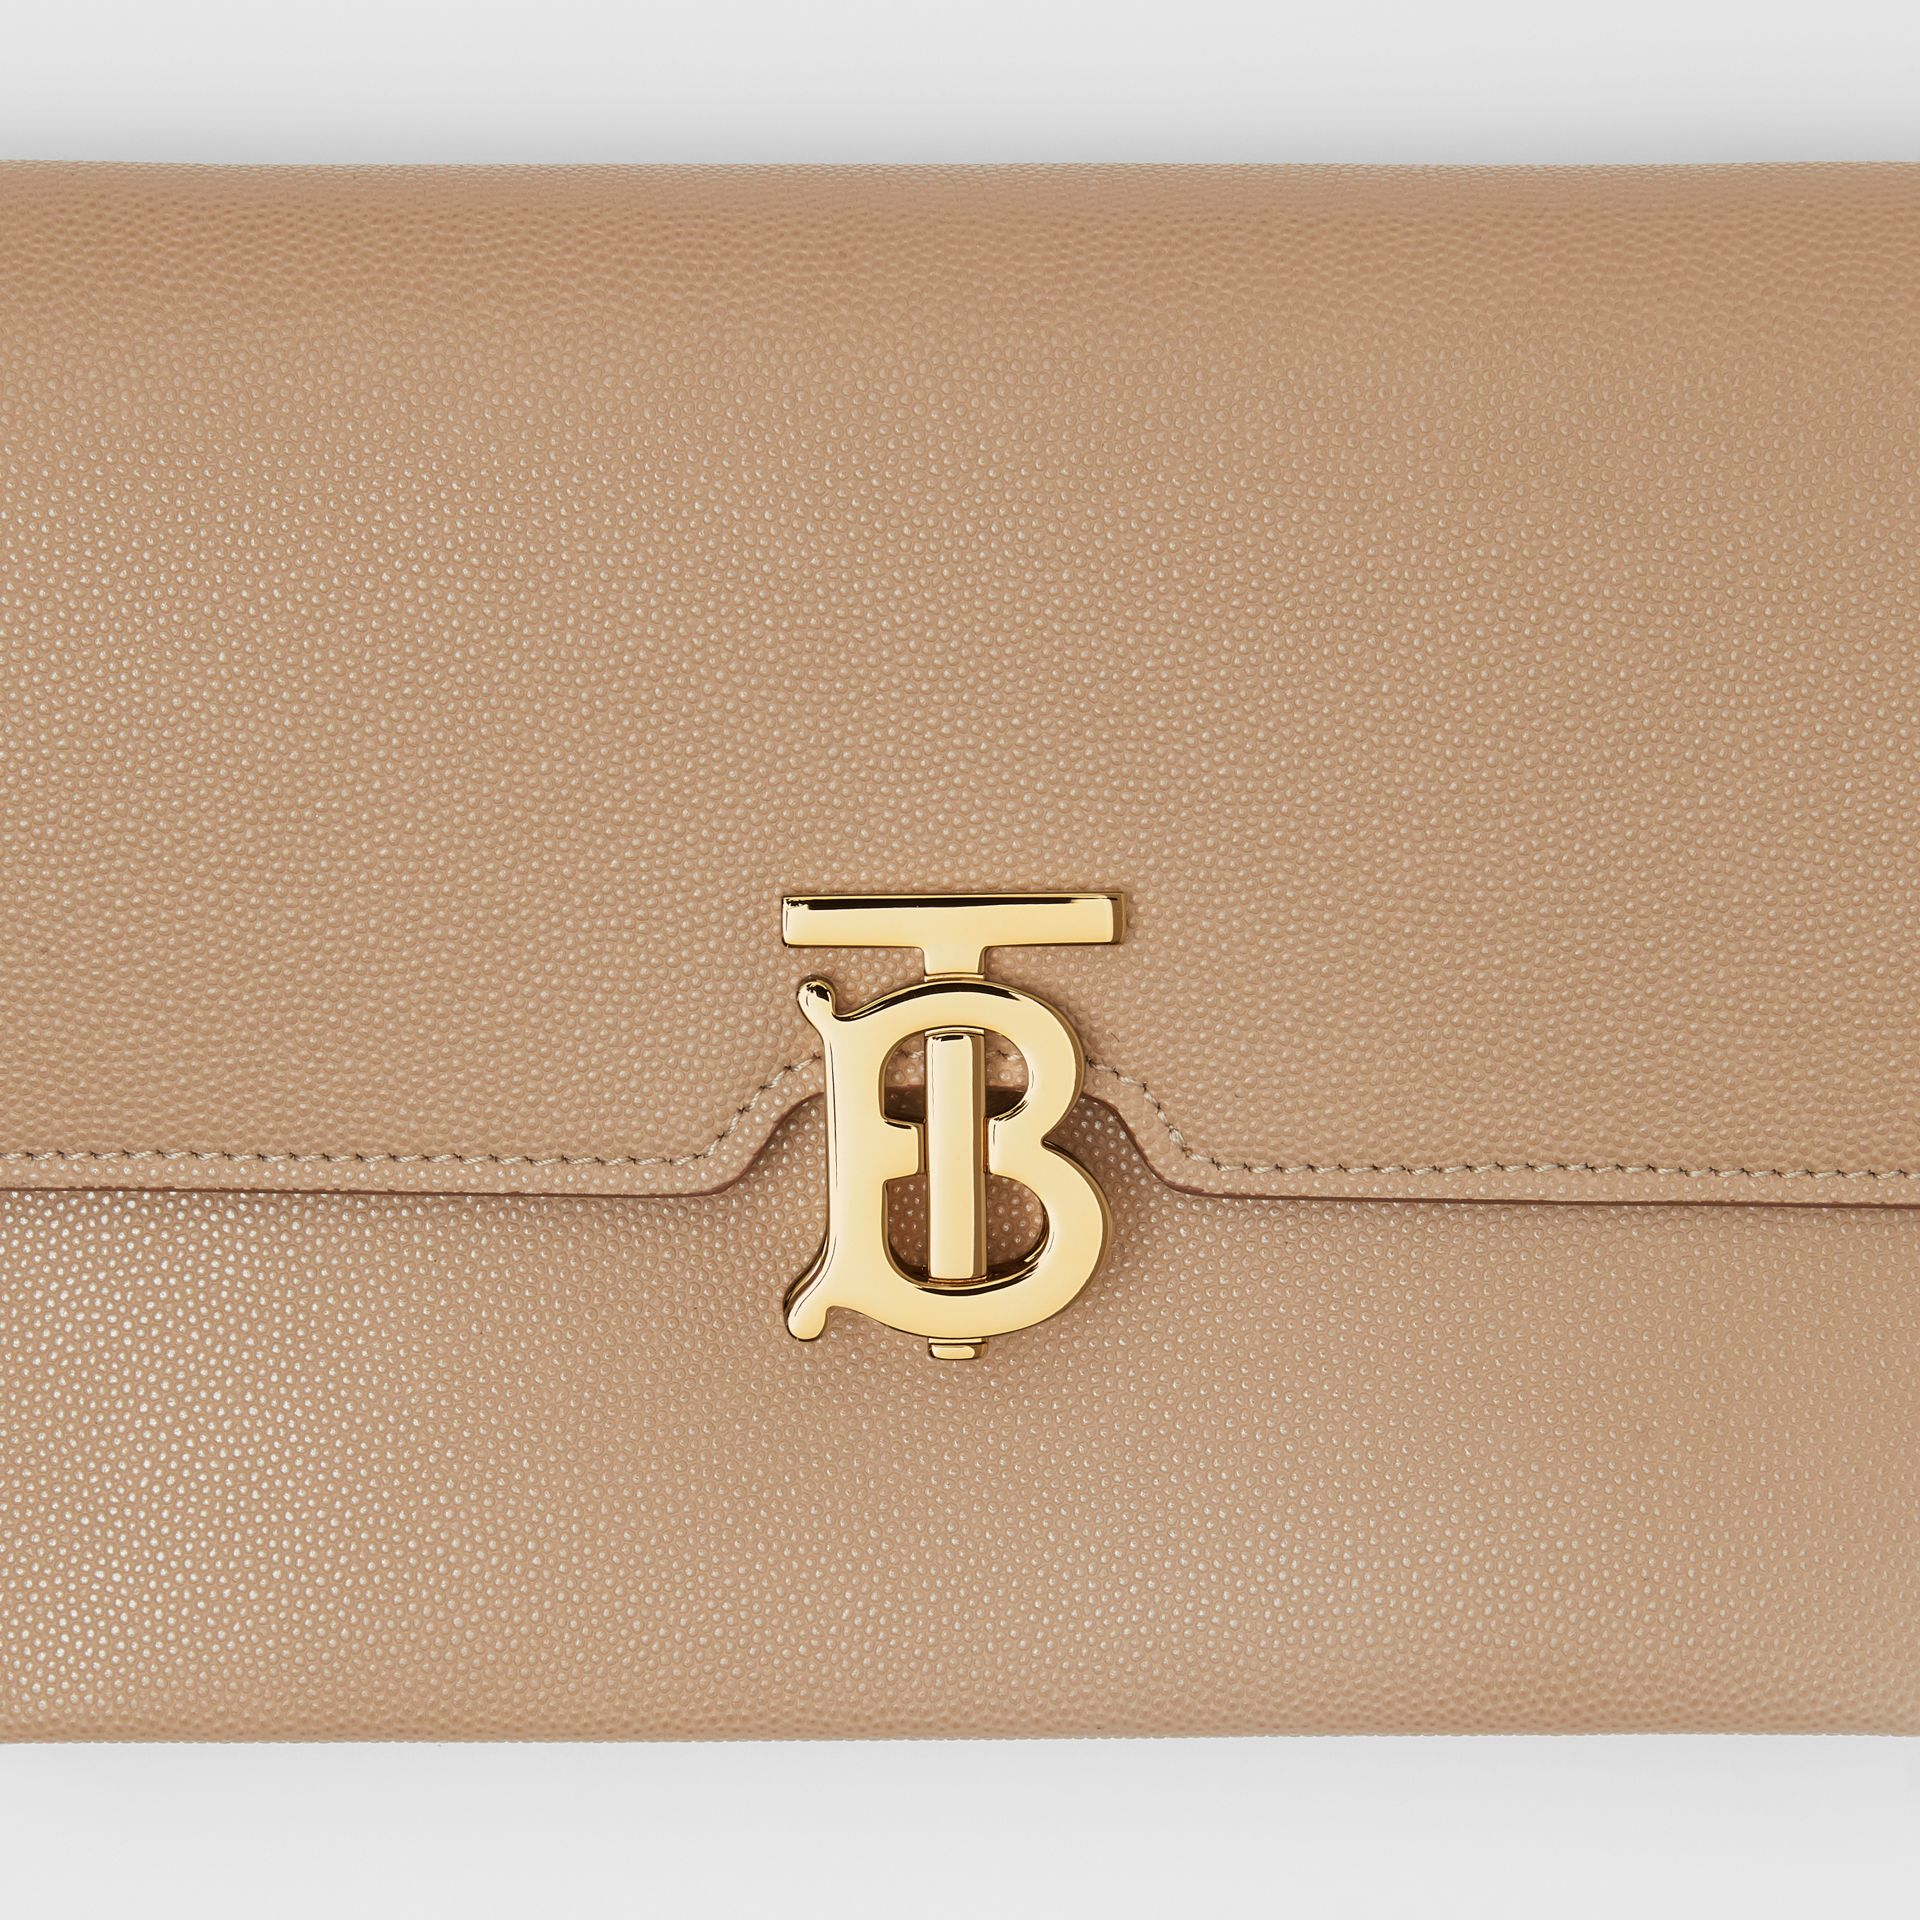 Small Monogram Motif Leather Crossbody Bag in Archive Beige - Women | Burberry Hong Kong S.A.R - gallery image 1